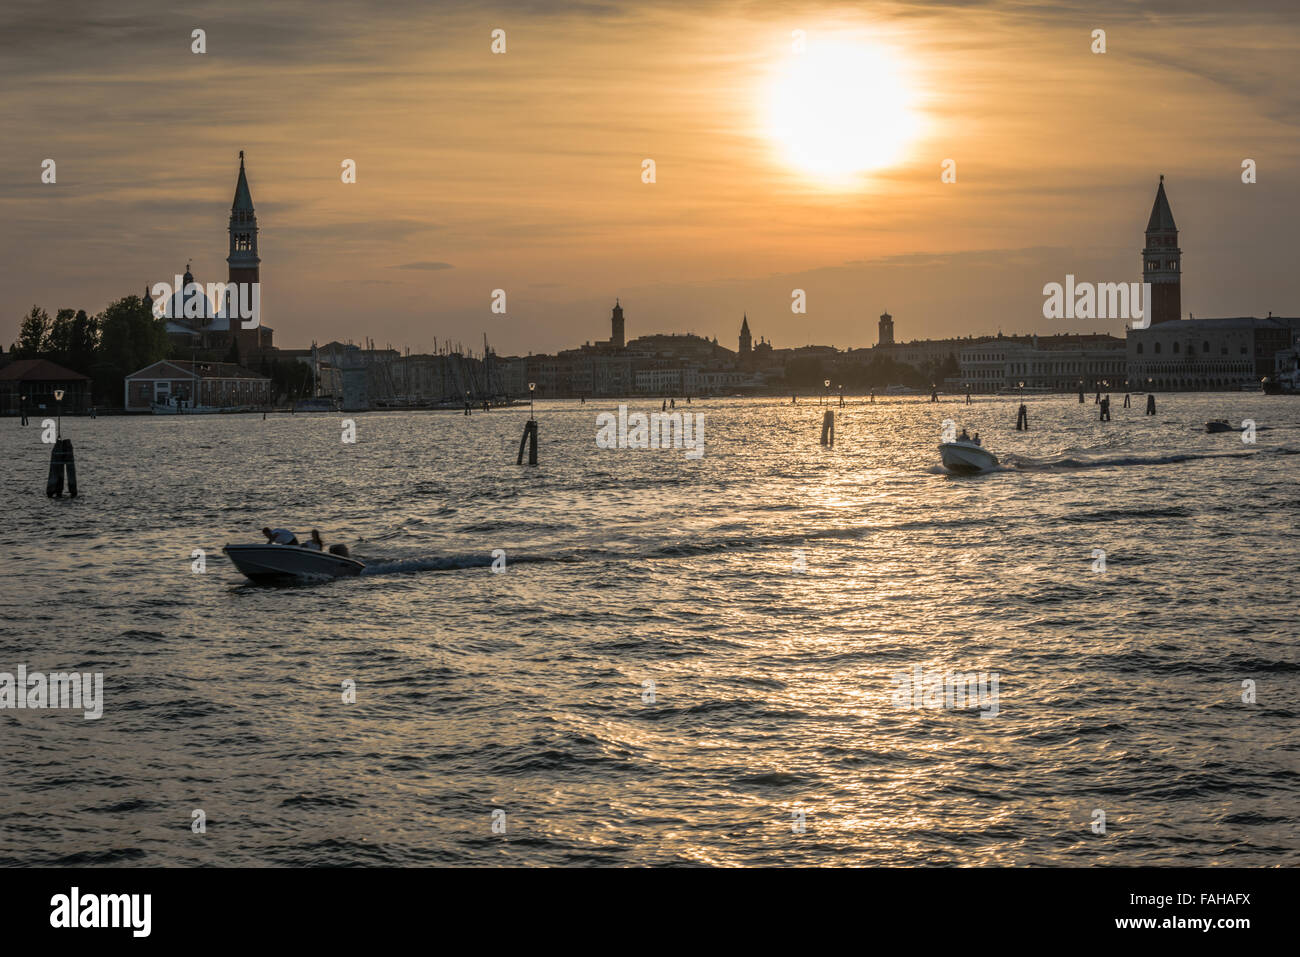 Stunning Sunset over the city of Venice as two speedboats cross the water Stock Photo